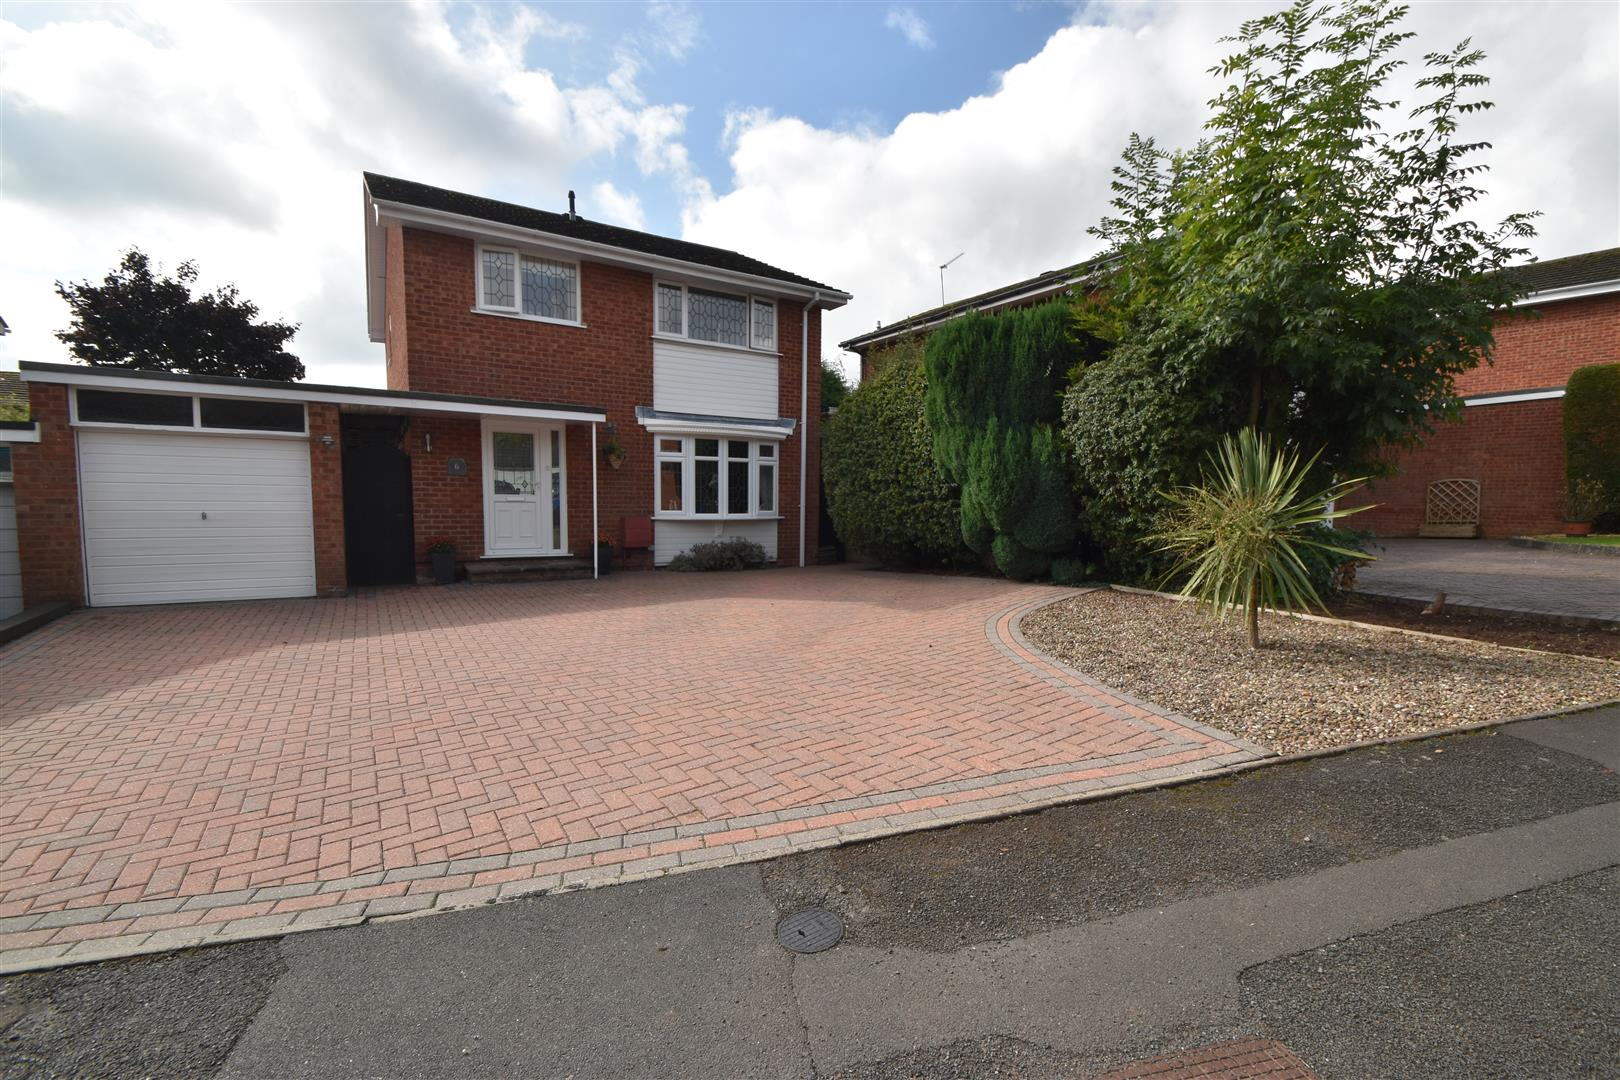 4 Bedrooms Link Detached House for sale in Leycroft, Droitwich